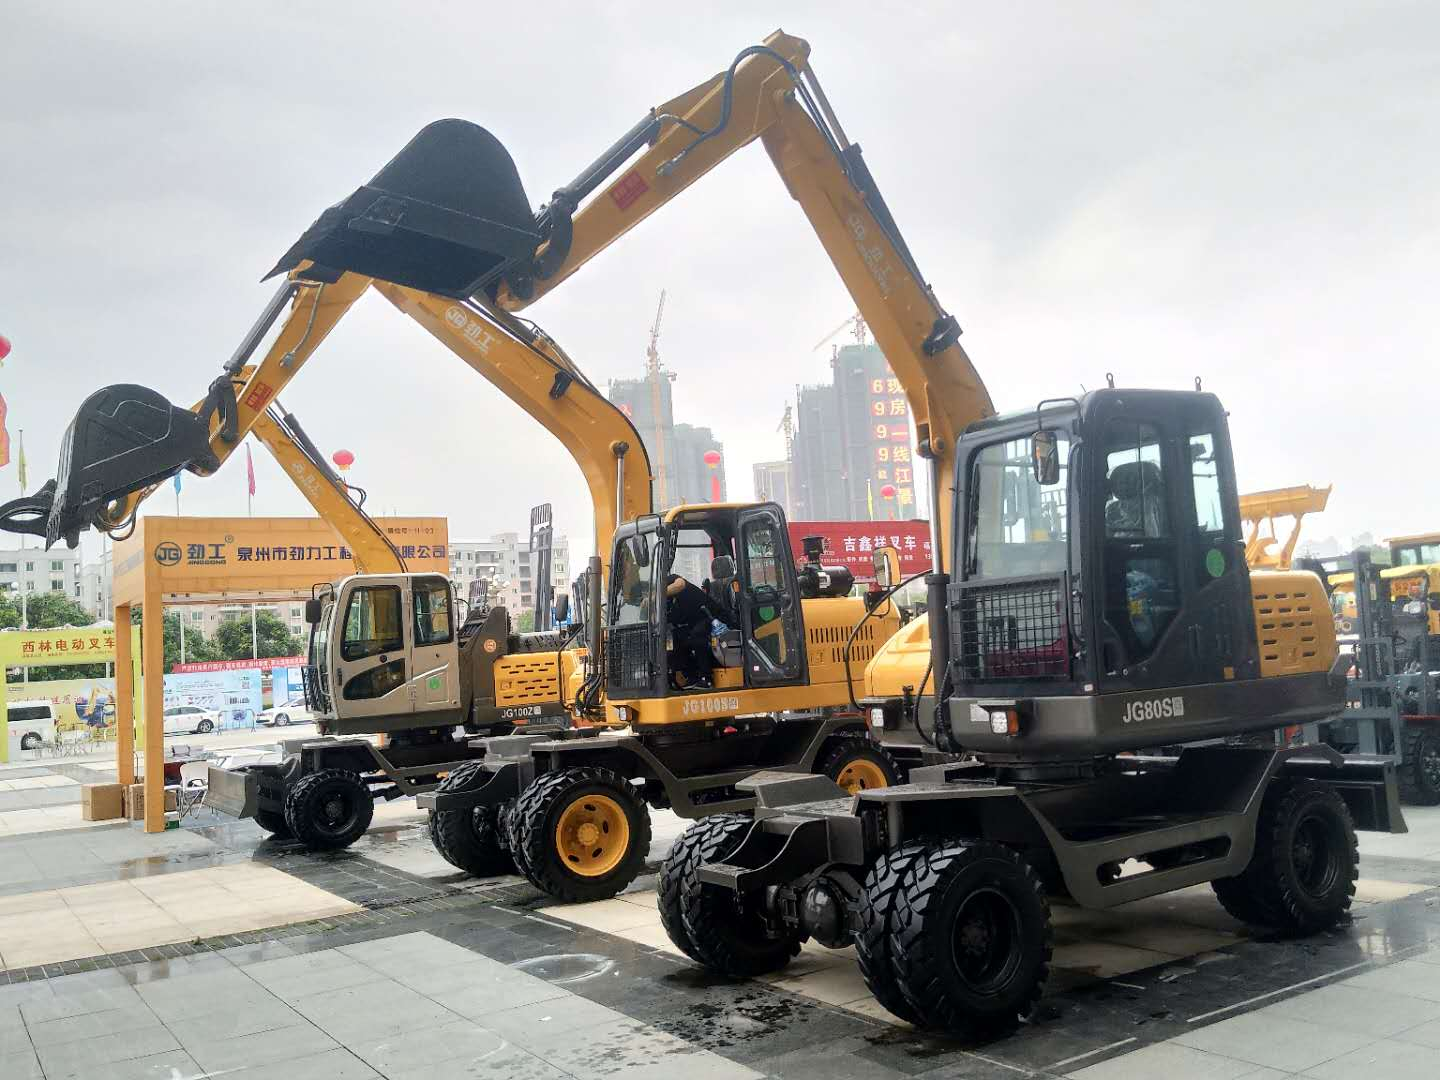 Jing Gong 100S and 80S wheel excavator